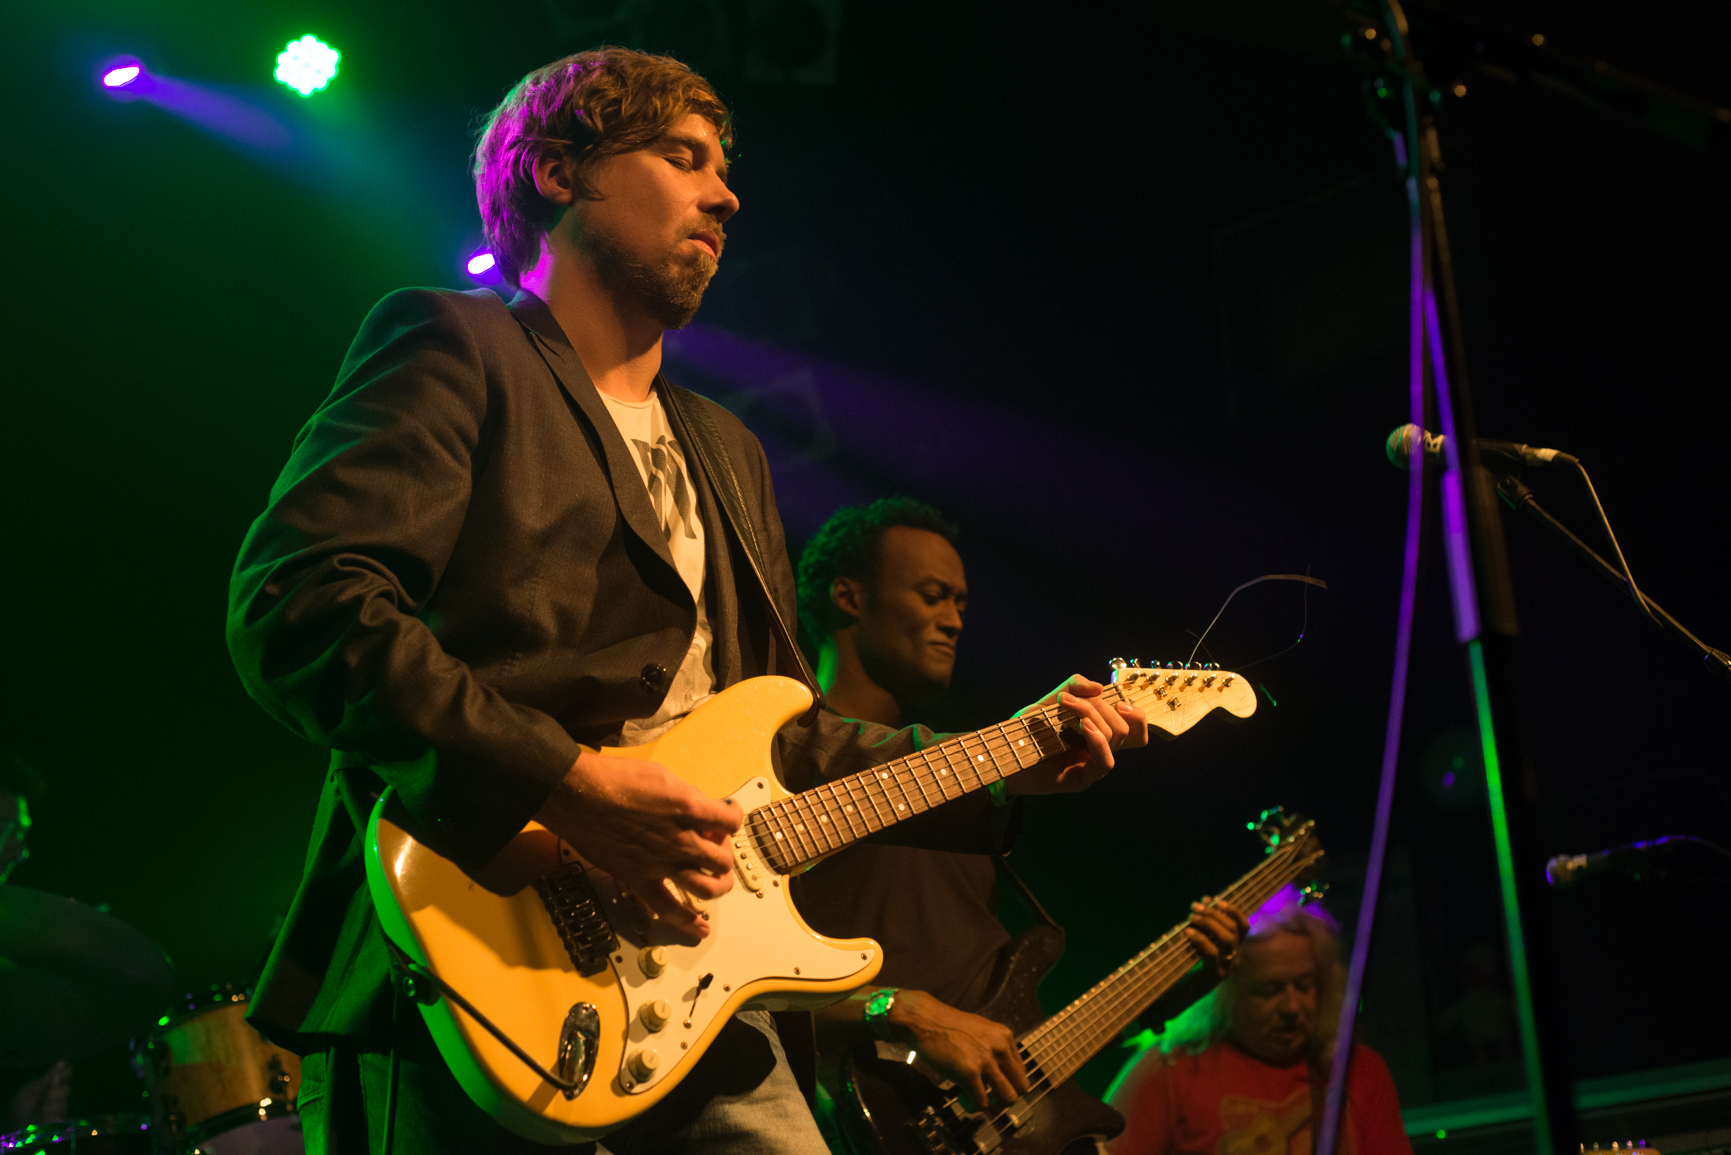 Mischa Gohlke and Band